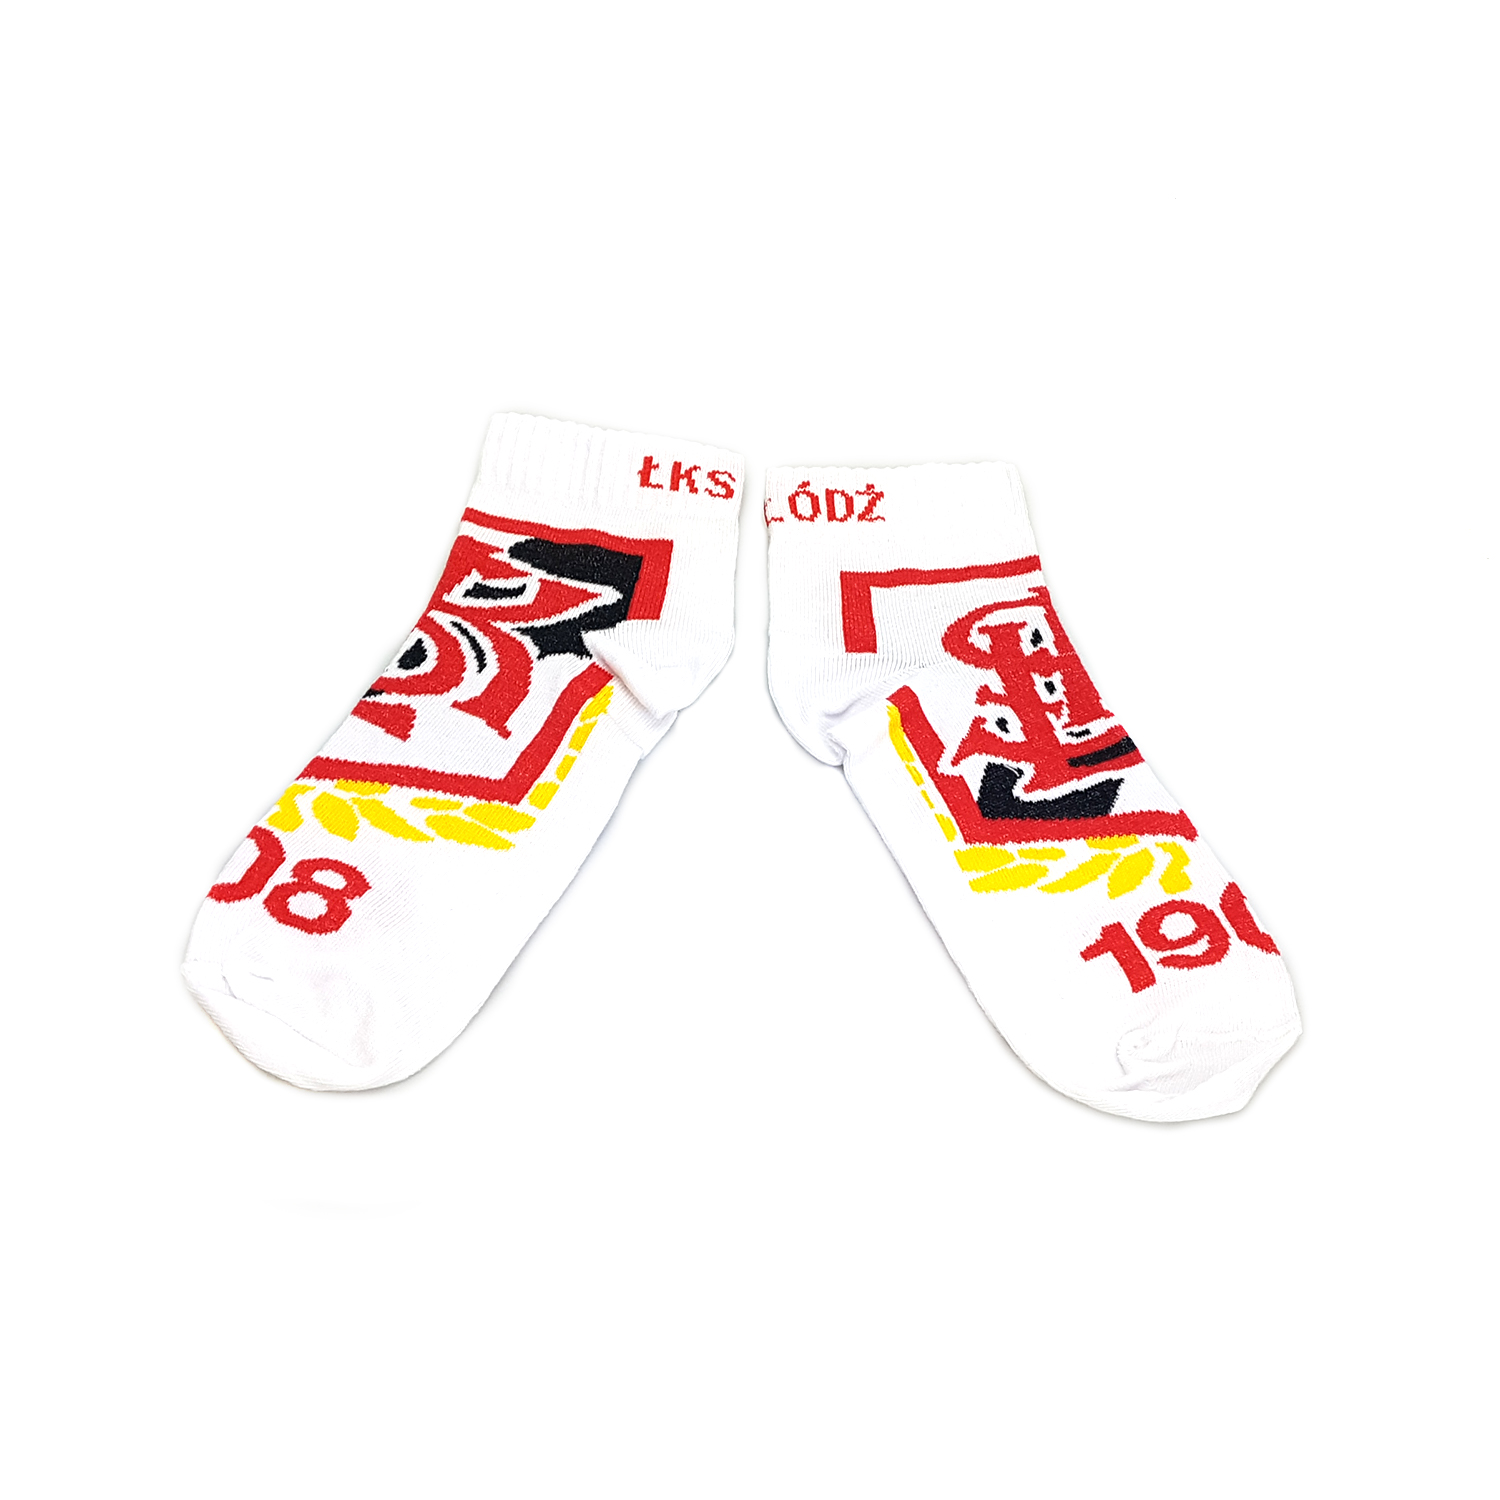 Customized Walking, Running and Sports Socks with company logo